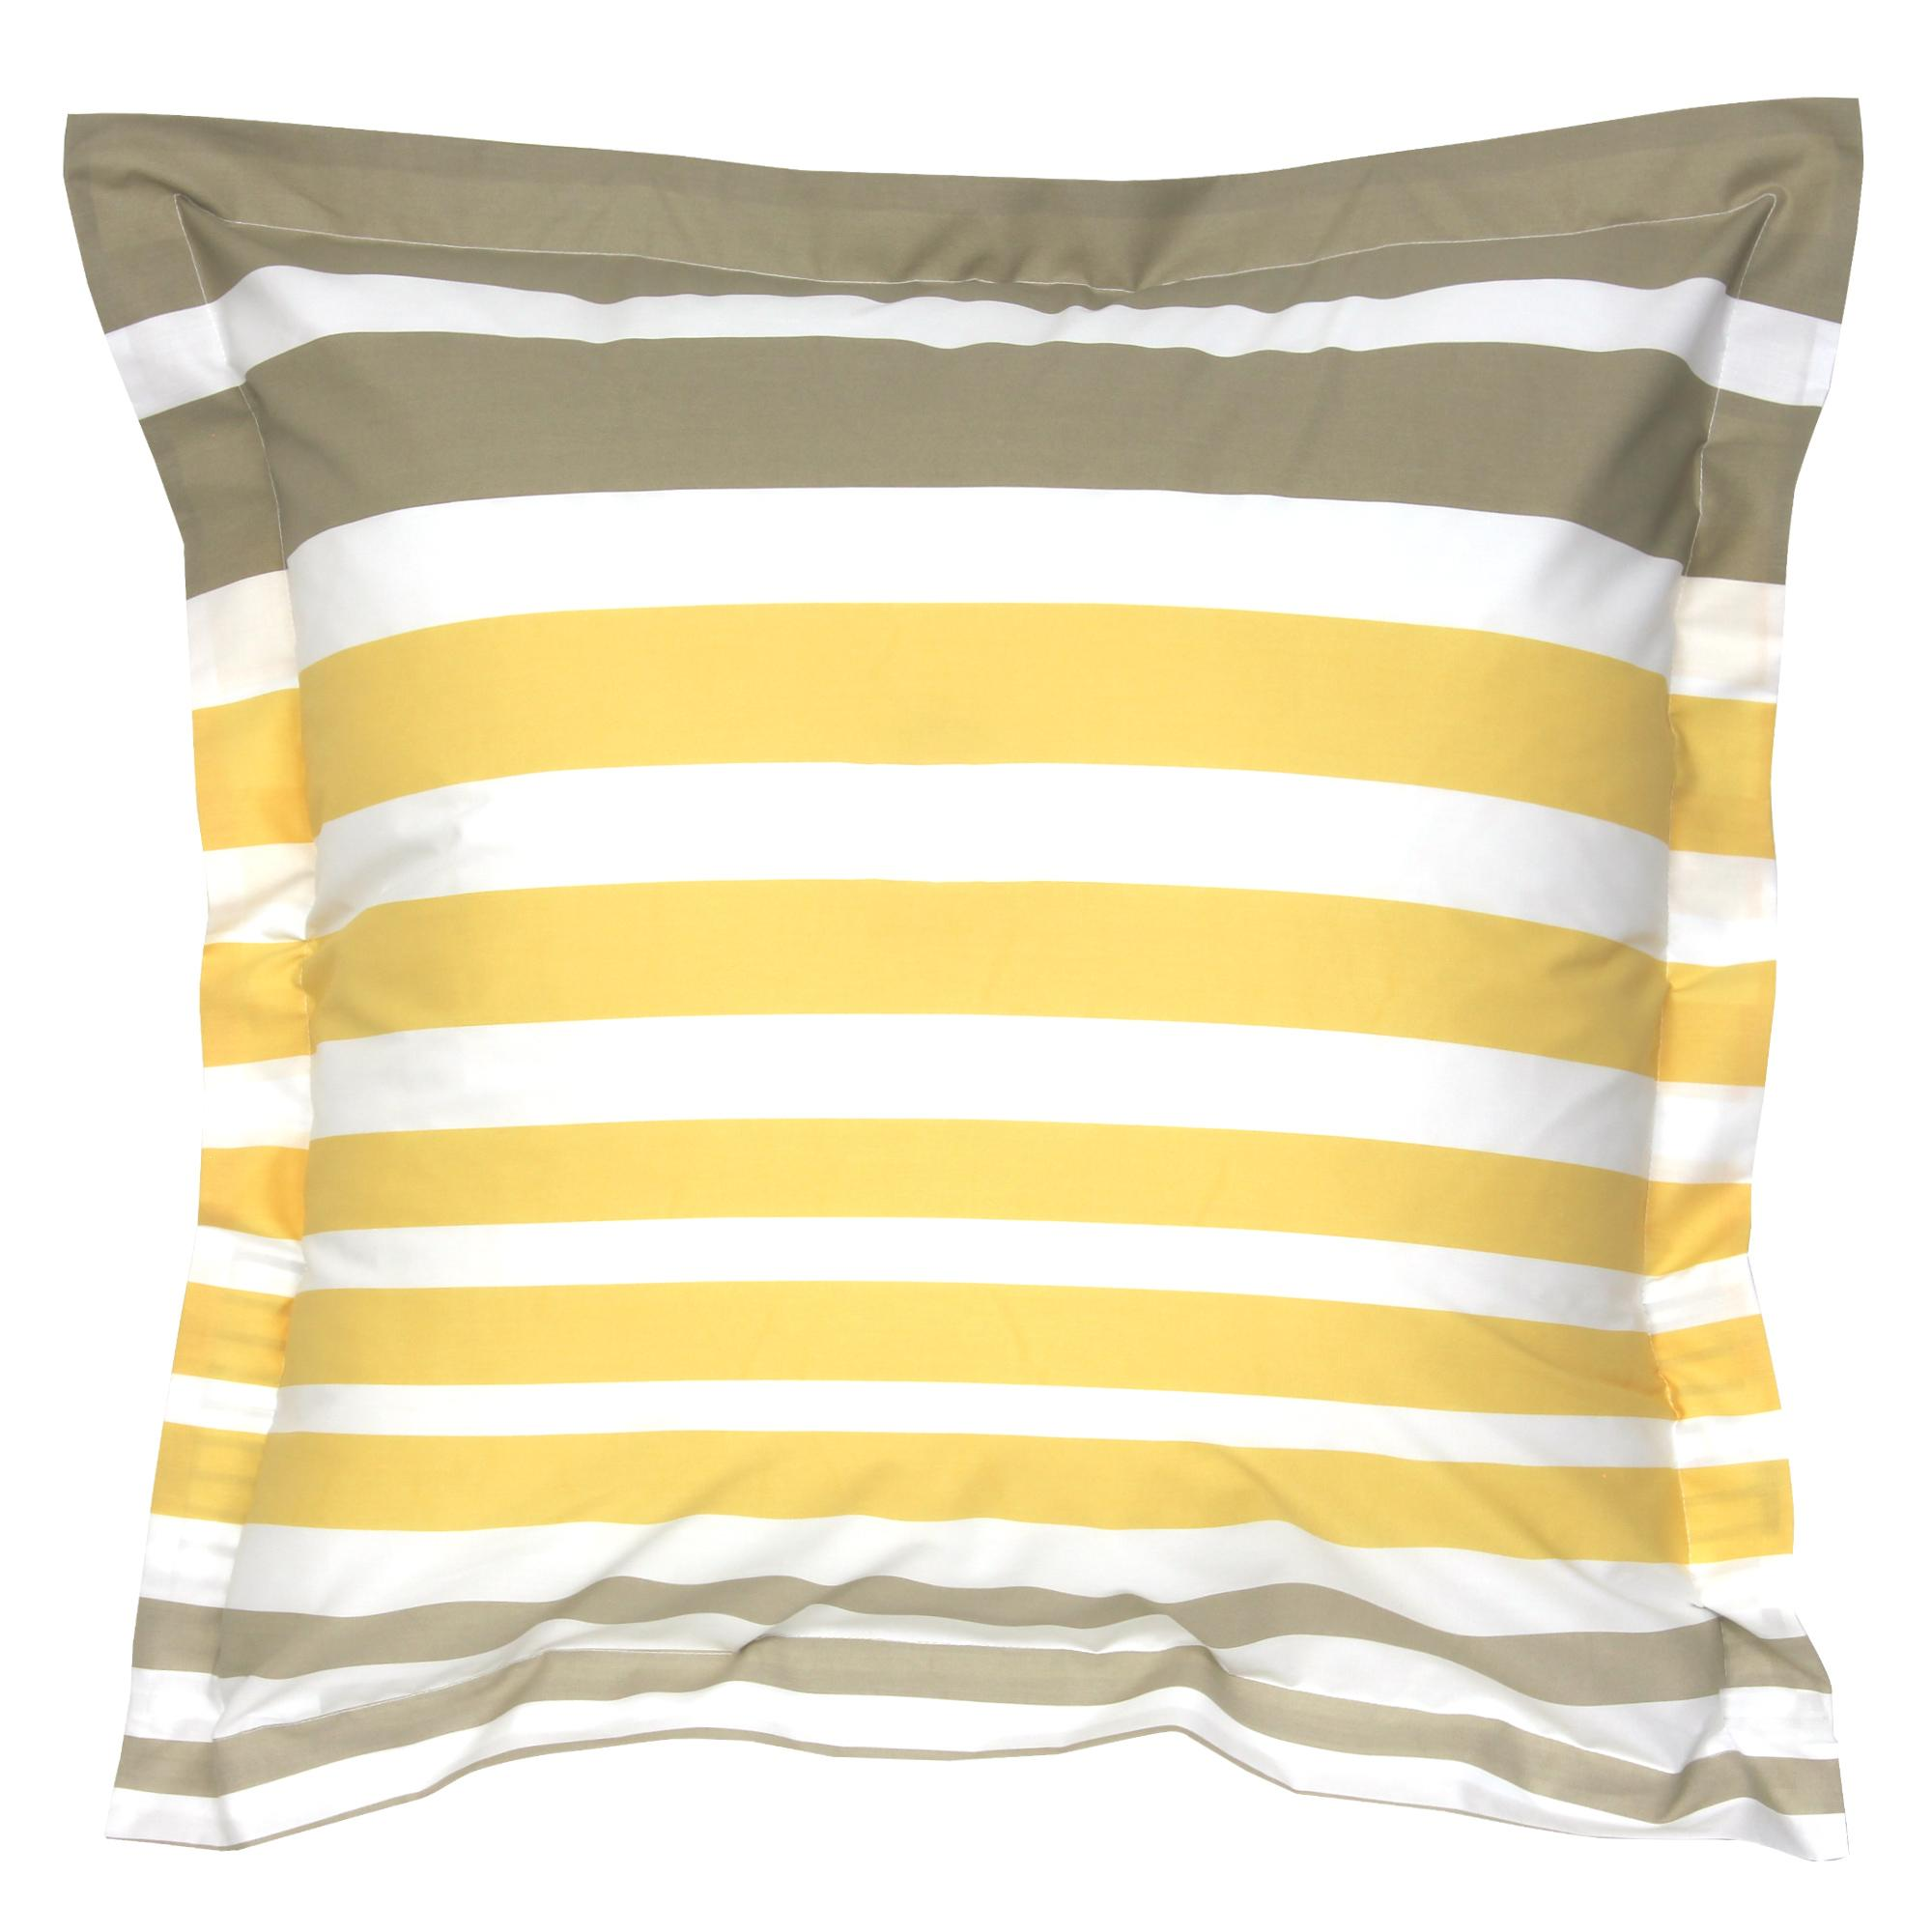 parure de lit 260x240 percale pur coton stripe narcisse. Black Bedroom Furniture Sets. Home Design Ideas